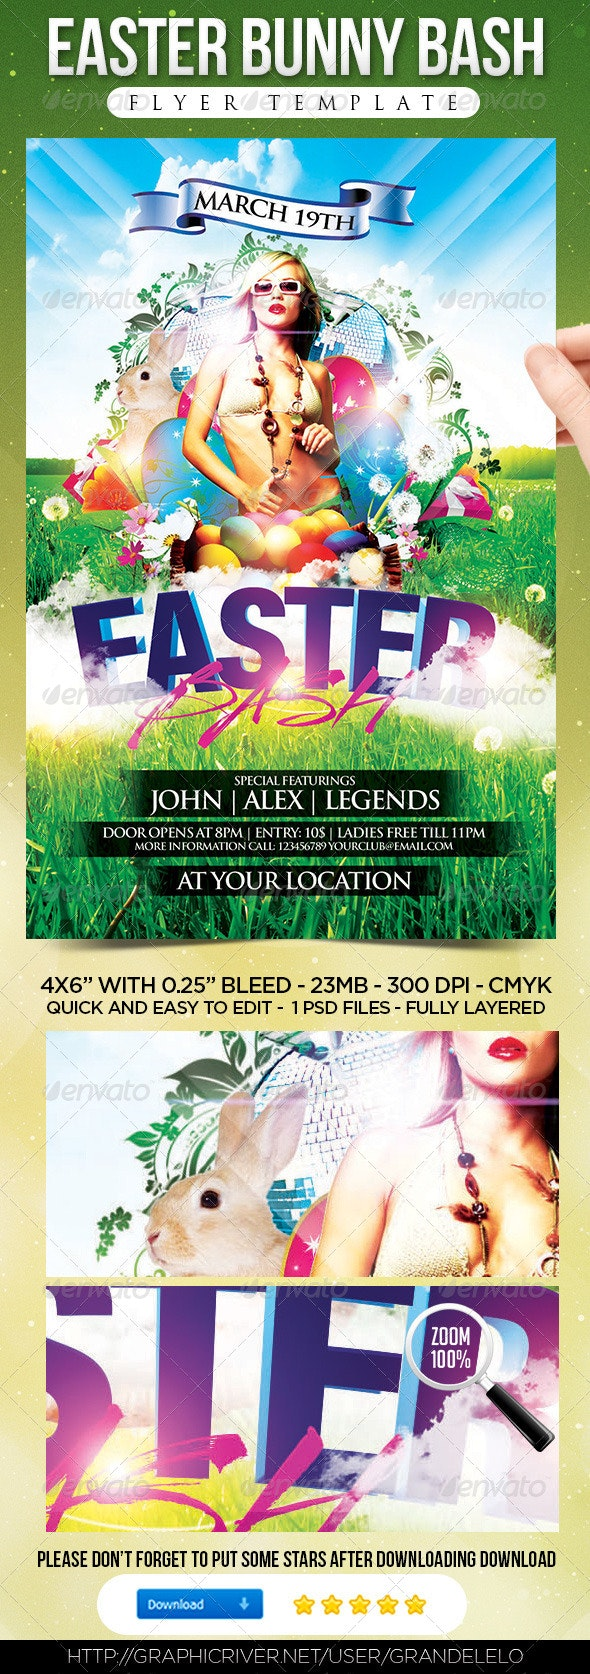 Easter Bash Flyer Template - Holidays Events